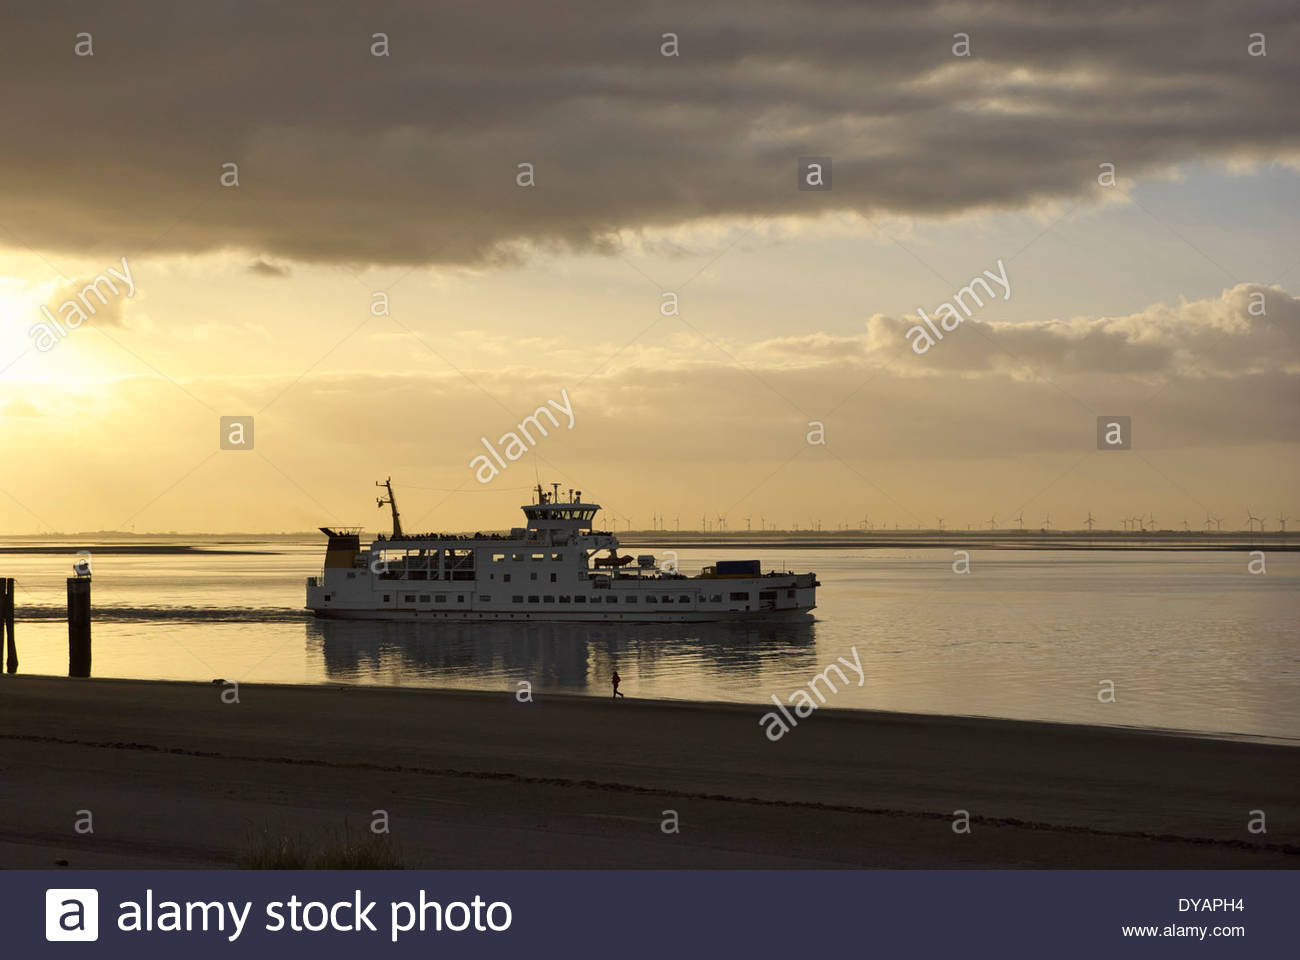 The ferry Frisia V departs Nordseeinsel Norderney toward Norddeich, wind generators in distance. Stock Photo